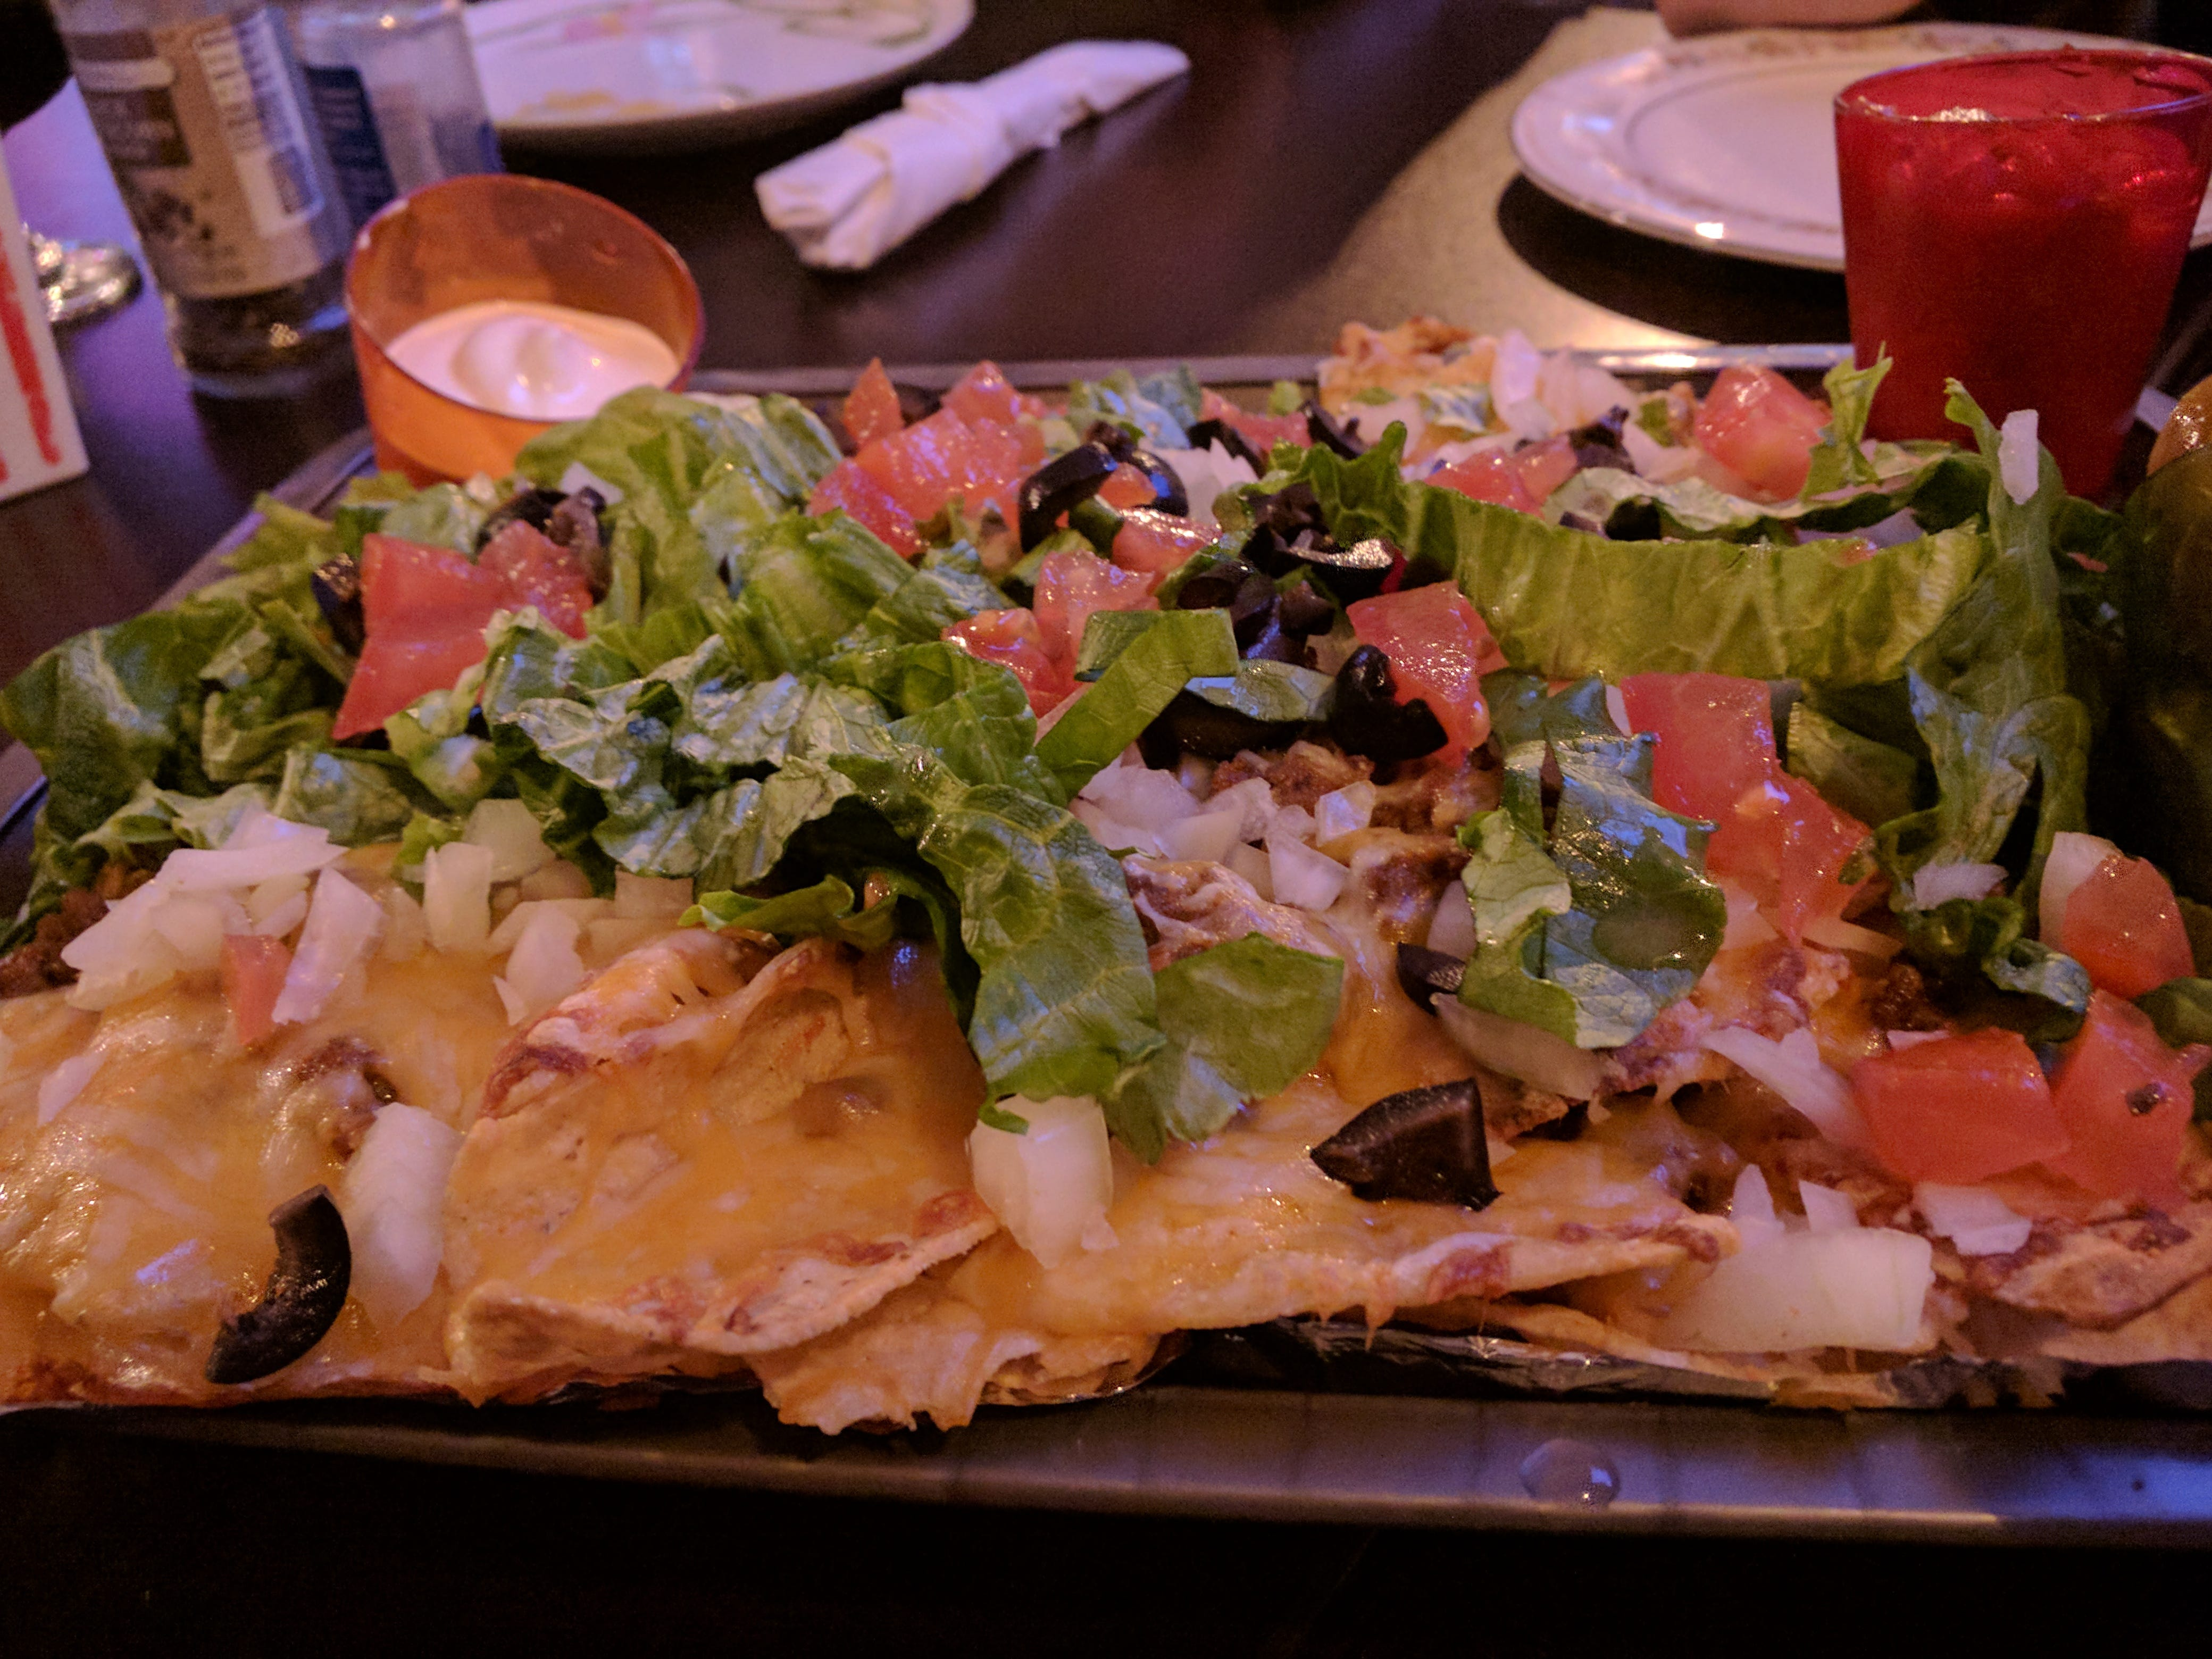 Cheesy, beefy nachos are covered with lettuce, black olives, tomato, and onions with jalapenos, sour cream and salsa at The Village Tavern.